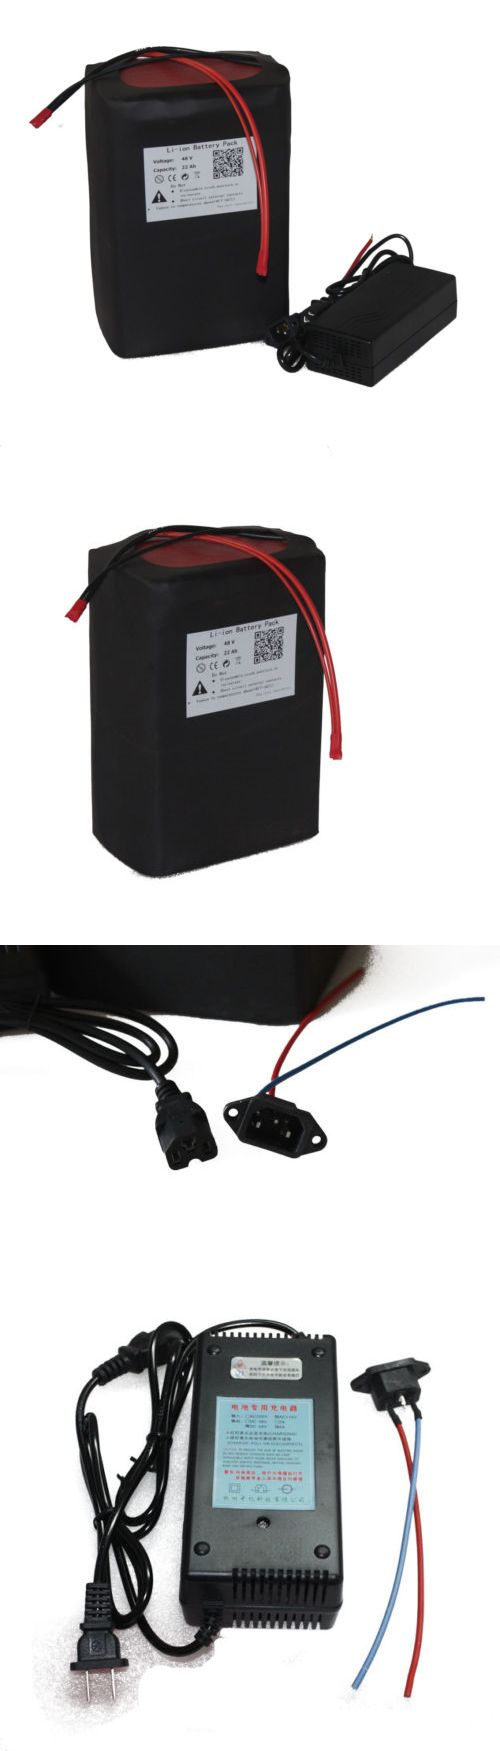 Electric Bicycle Components 177814: 48V22ah Lithium Battery Pack For E-Bike/Scooter With A Charger Bms 1000W BUY IT NOW ONLY: $441.0